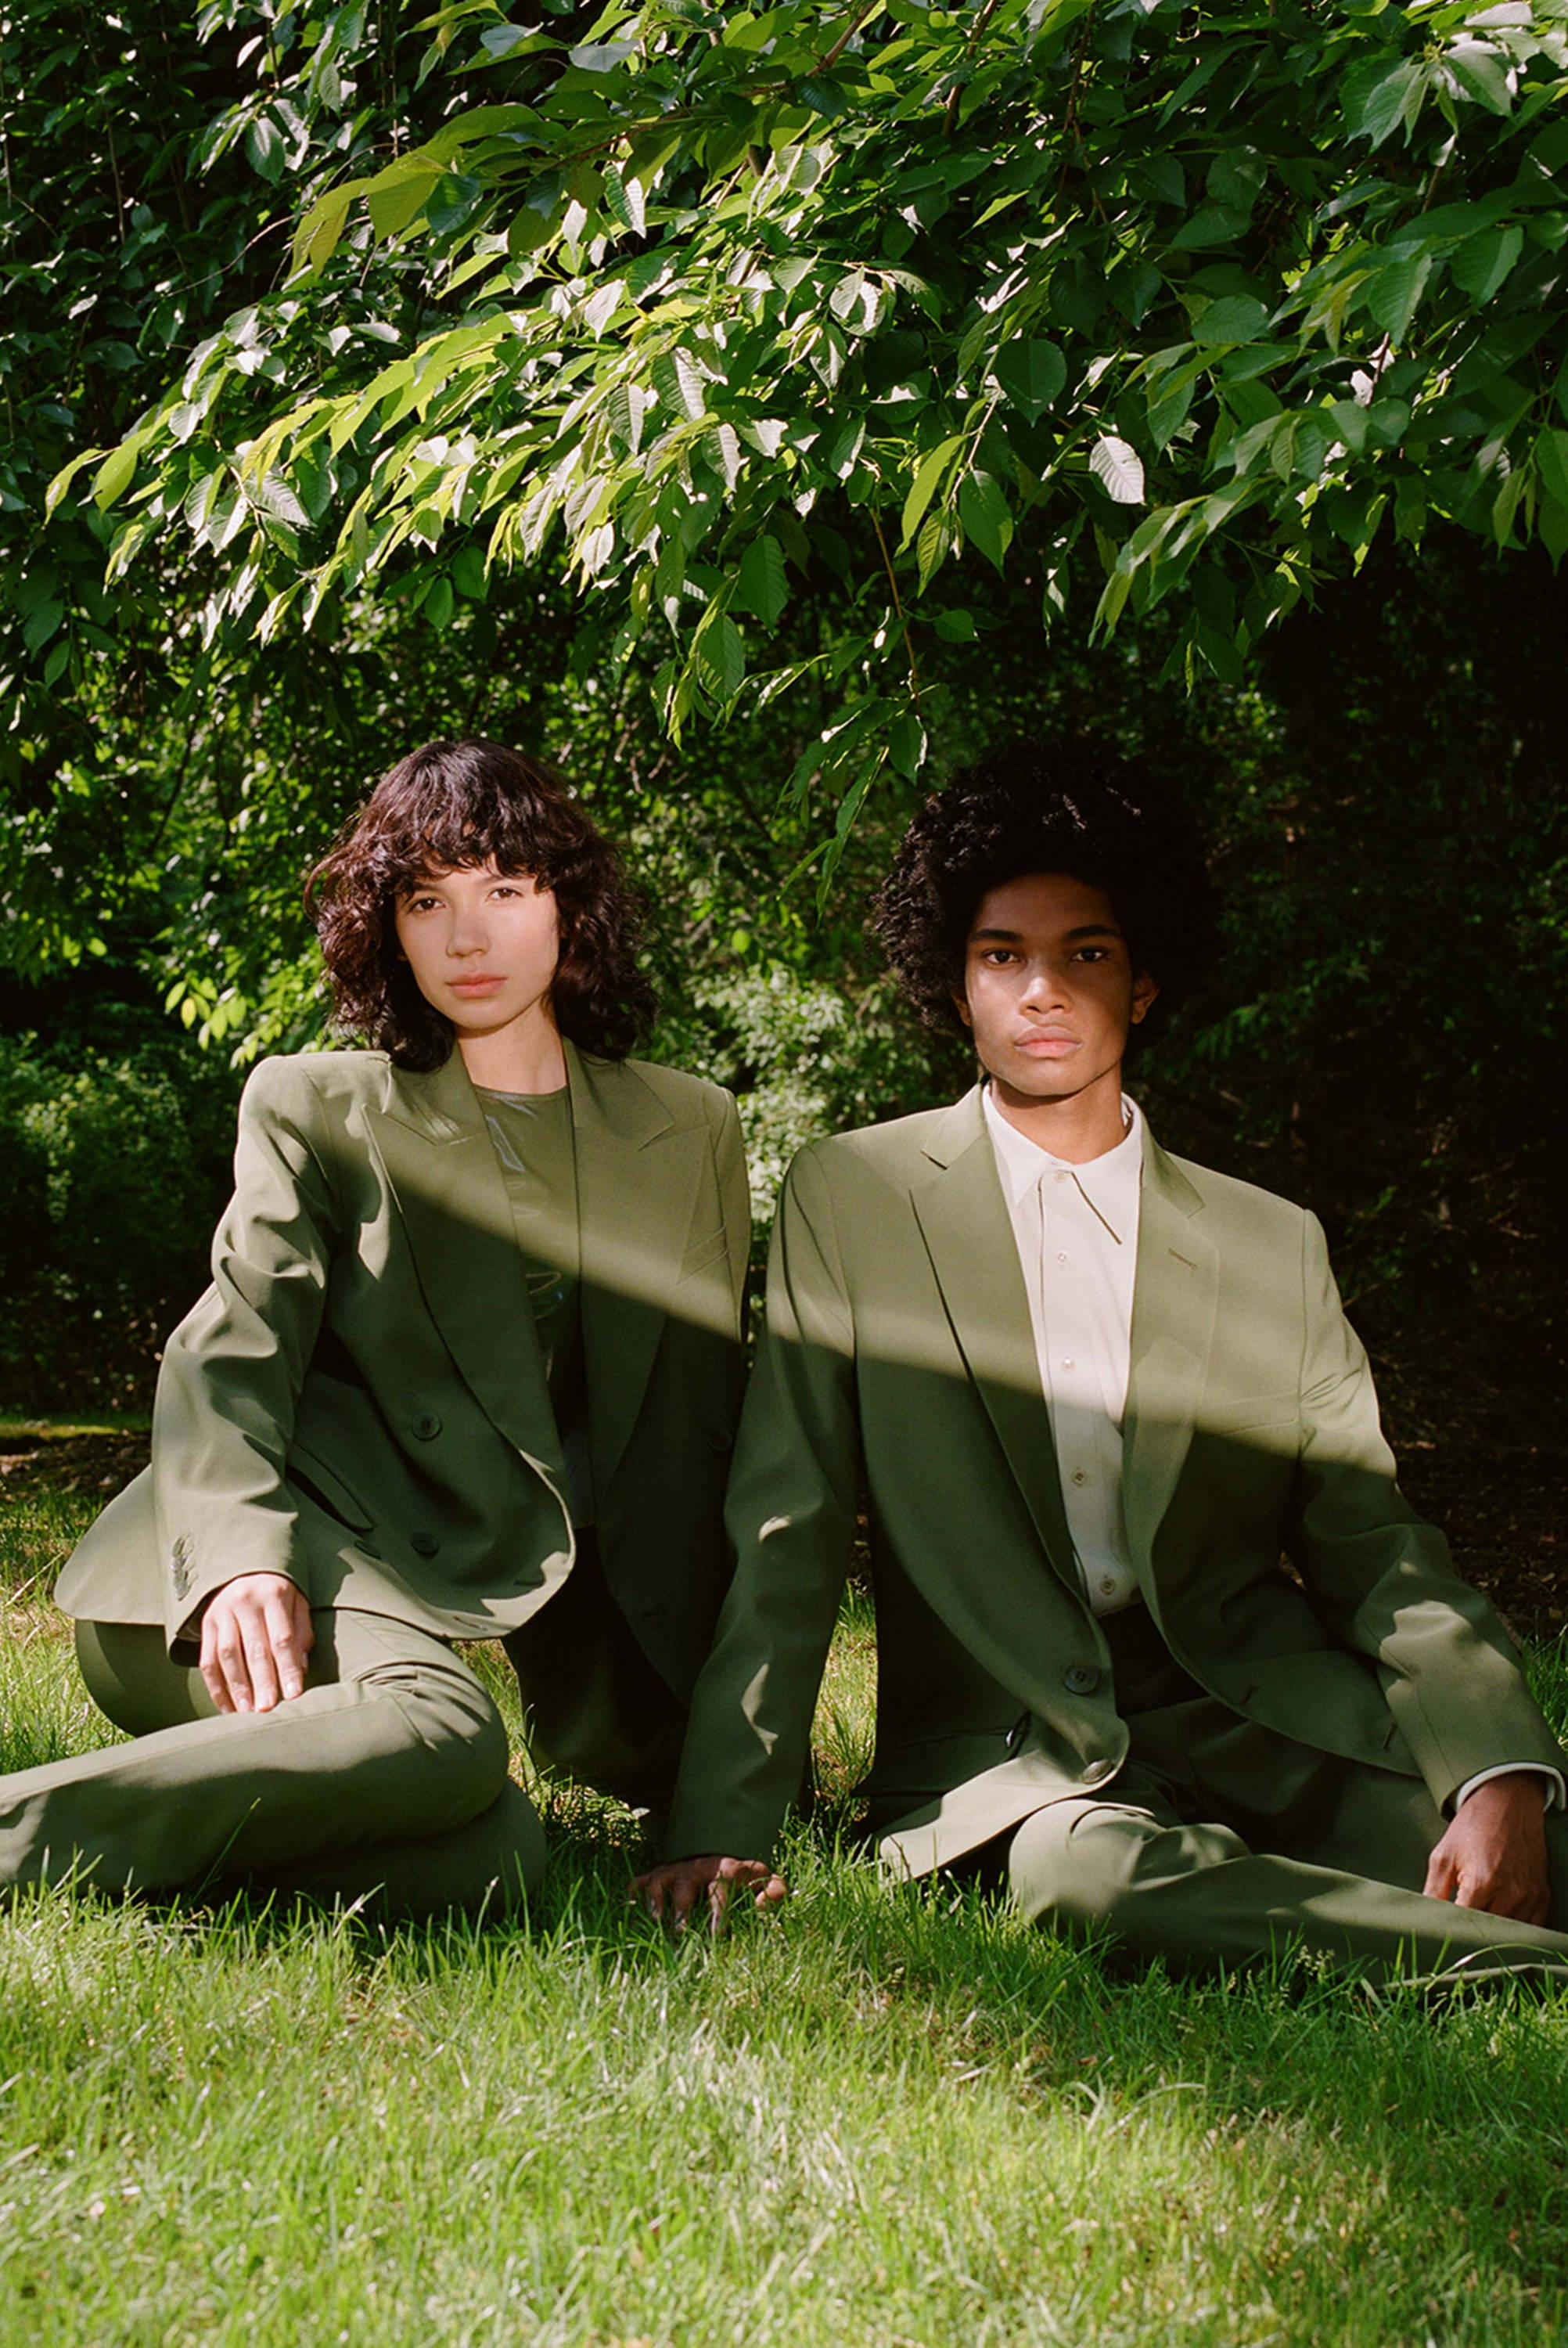 Two models sitting under a tree. Both models are wearing green suits.